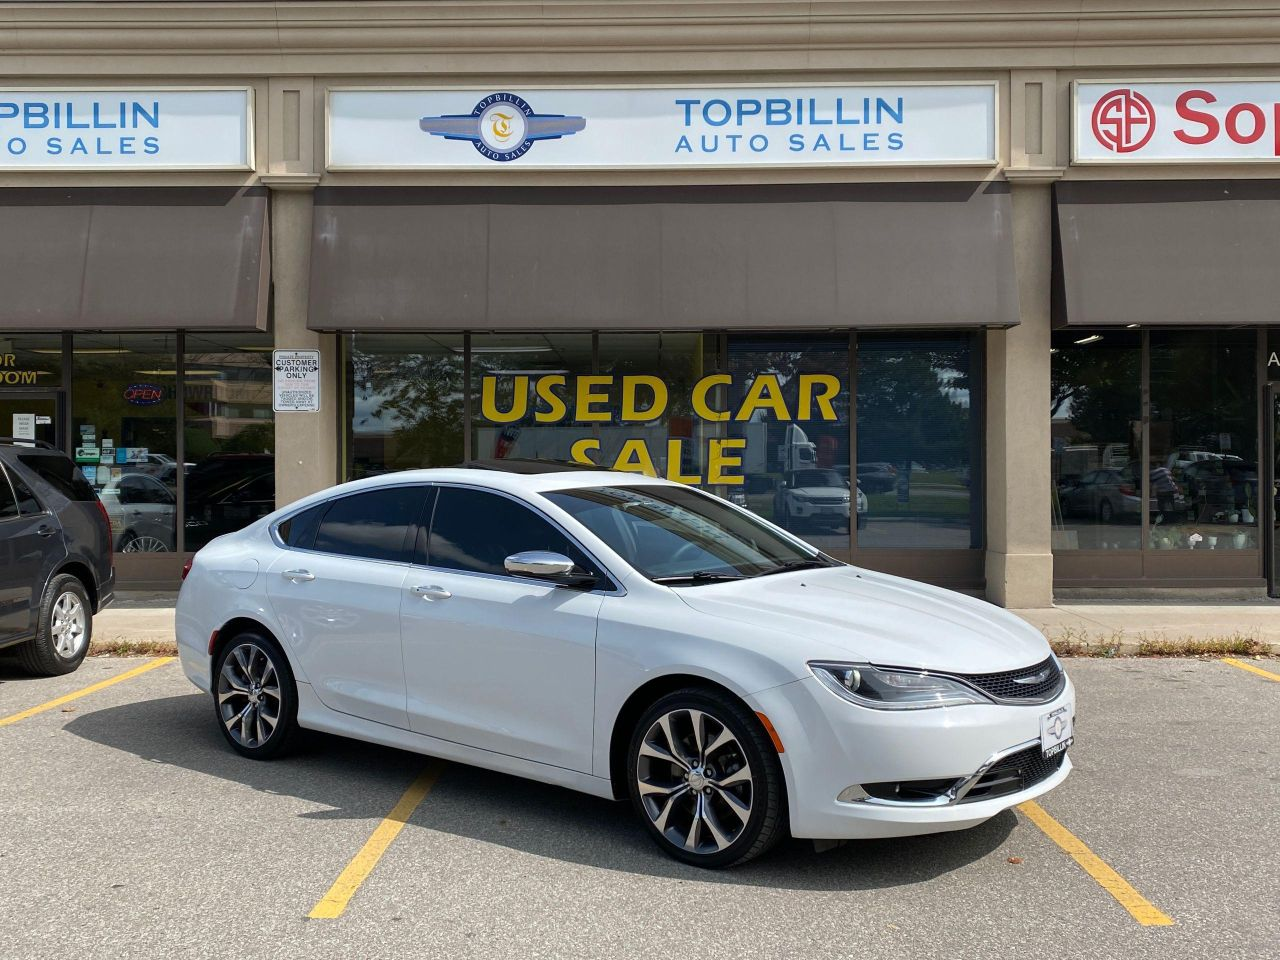 2016 Chrysler 200 C Navi, Pano Roof, Leather & more